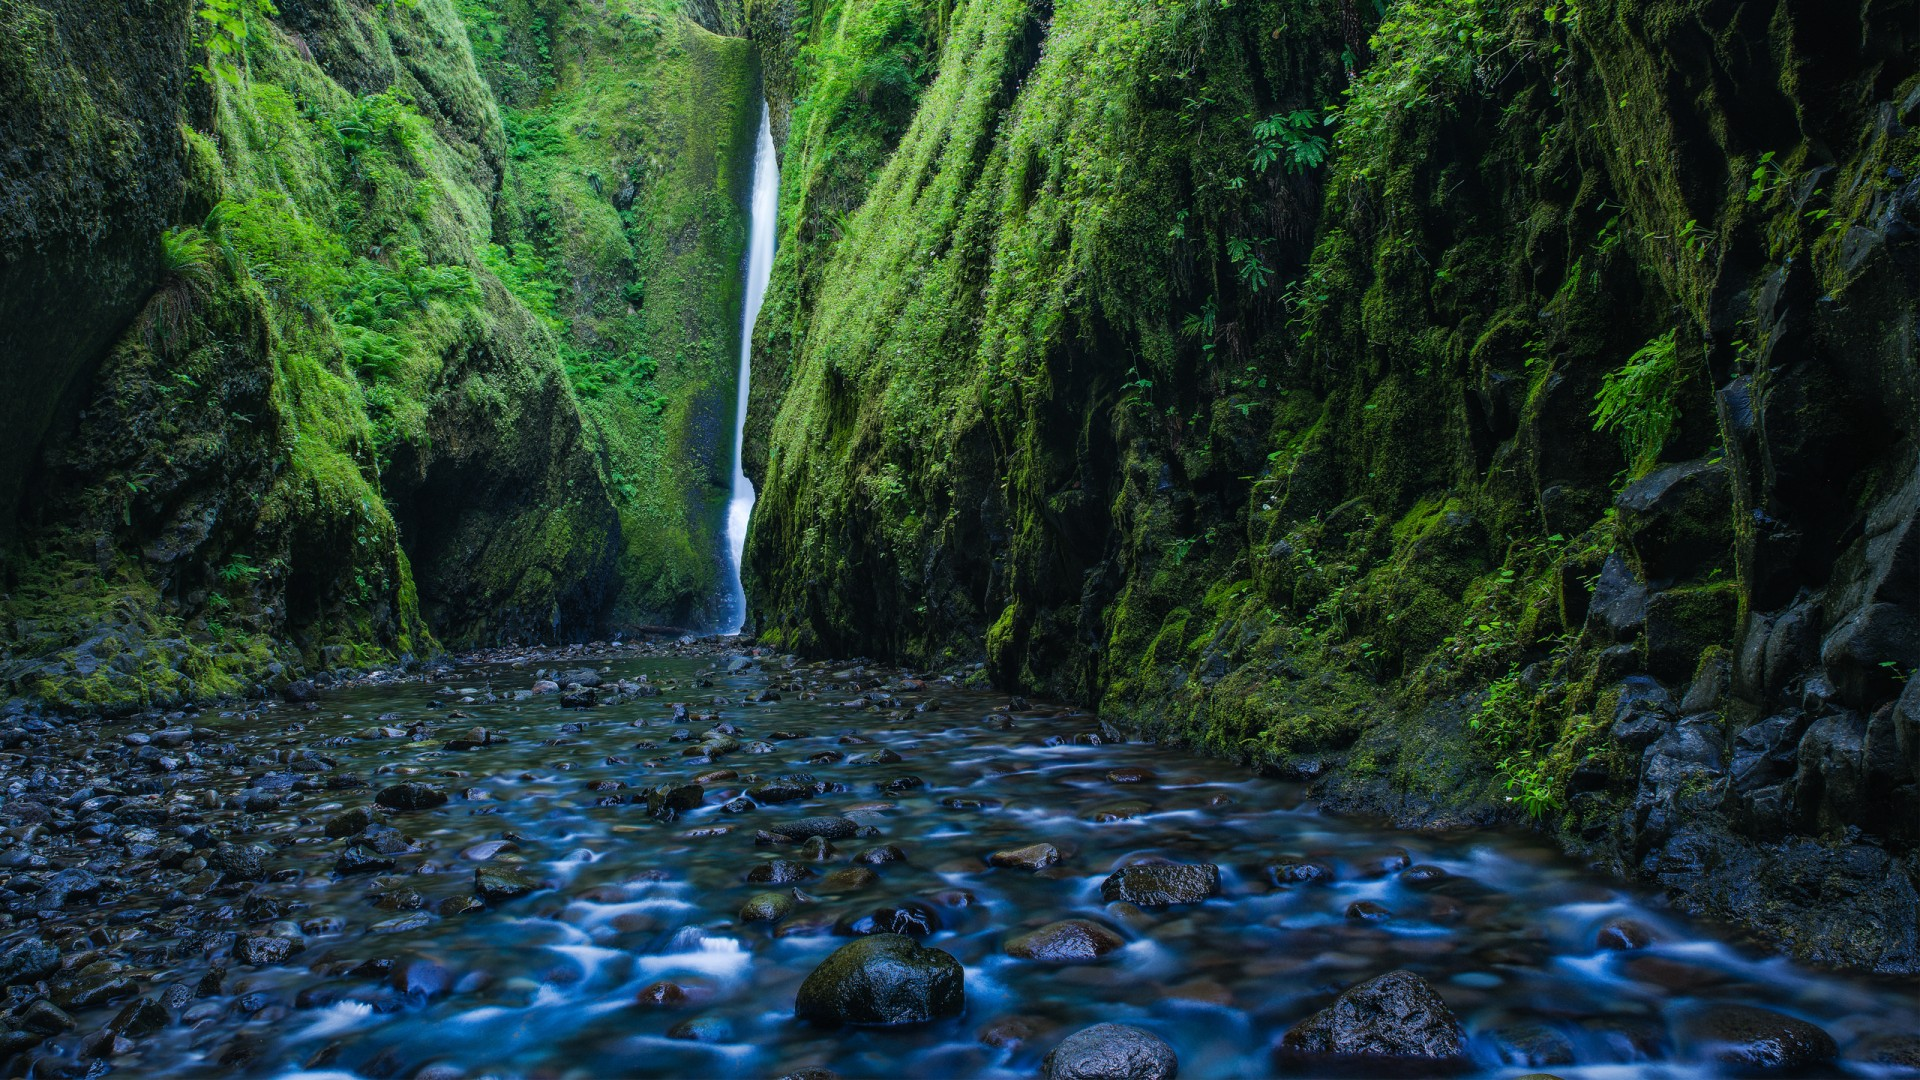 Anime Wallpaper Iphone 7 Plus Oneonta Gorge Waterfall Oregon Wallpapers Hd Wallpapers